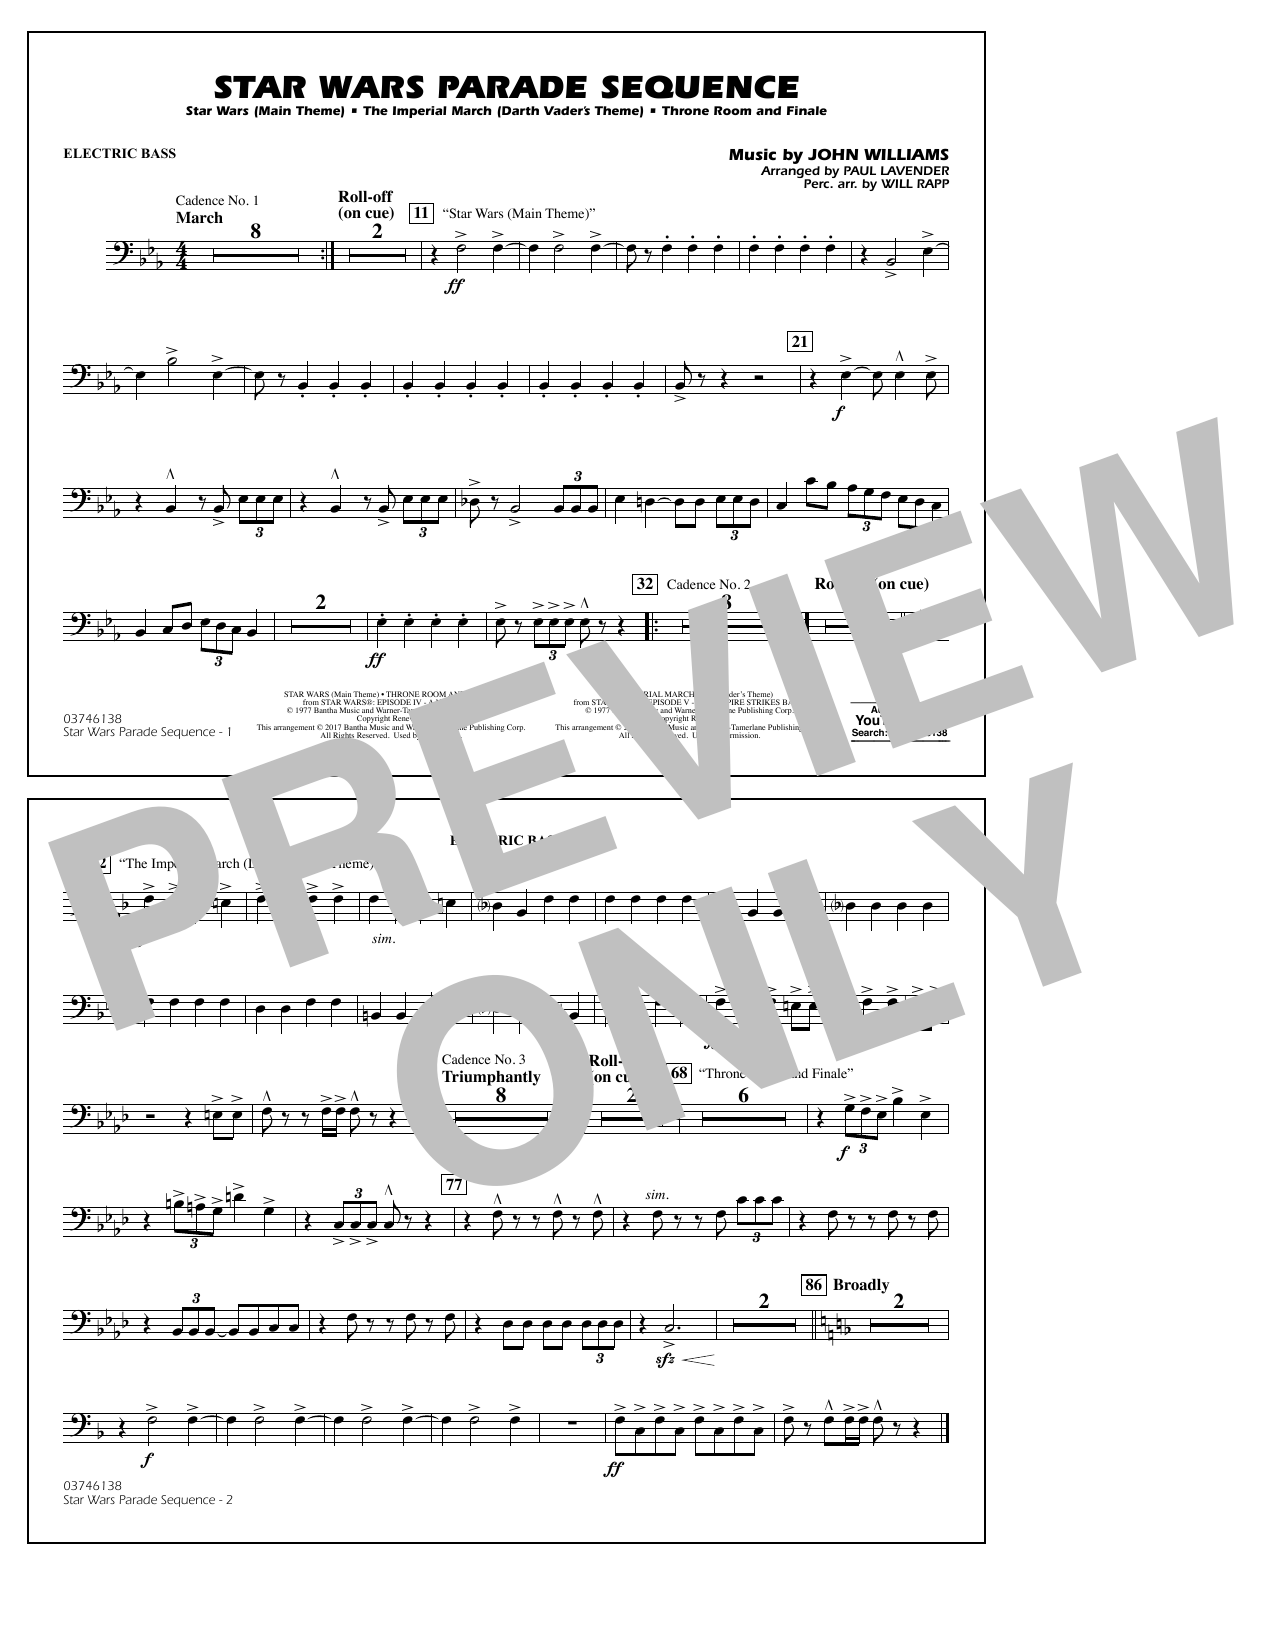 Star Wars Parade Sequence - Electric Bass Sheet Music